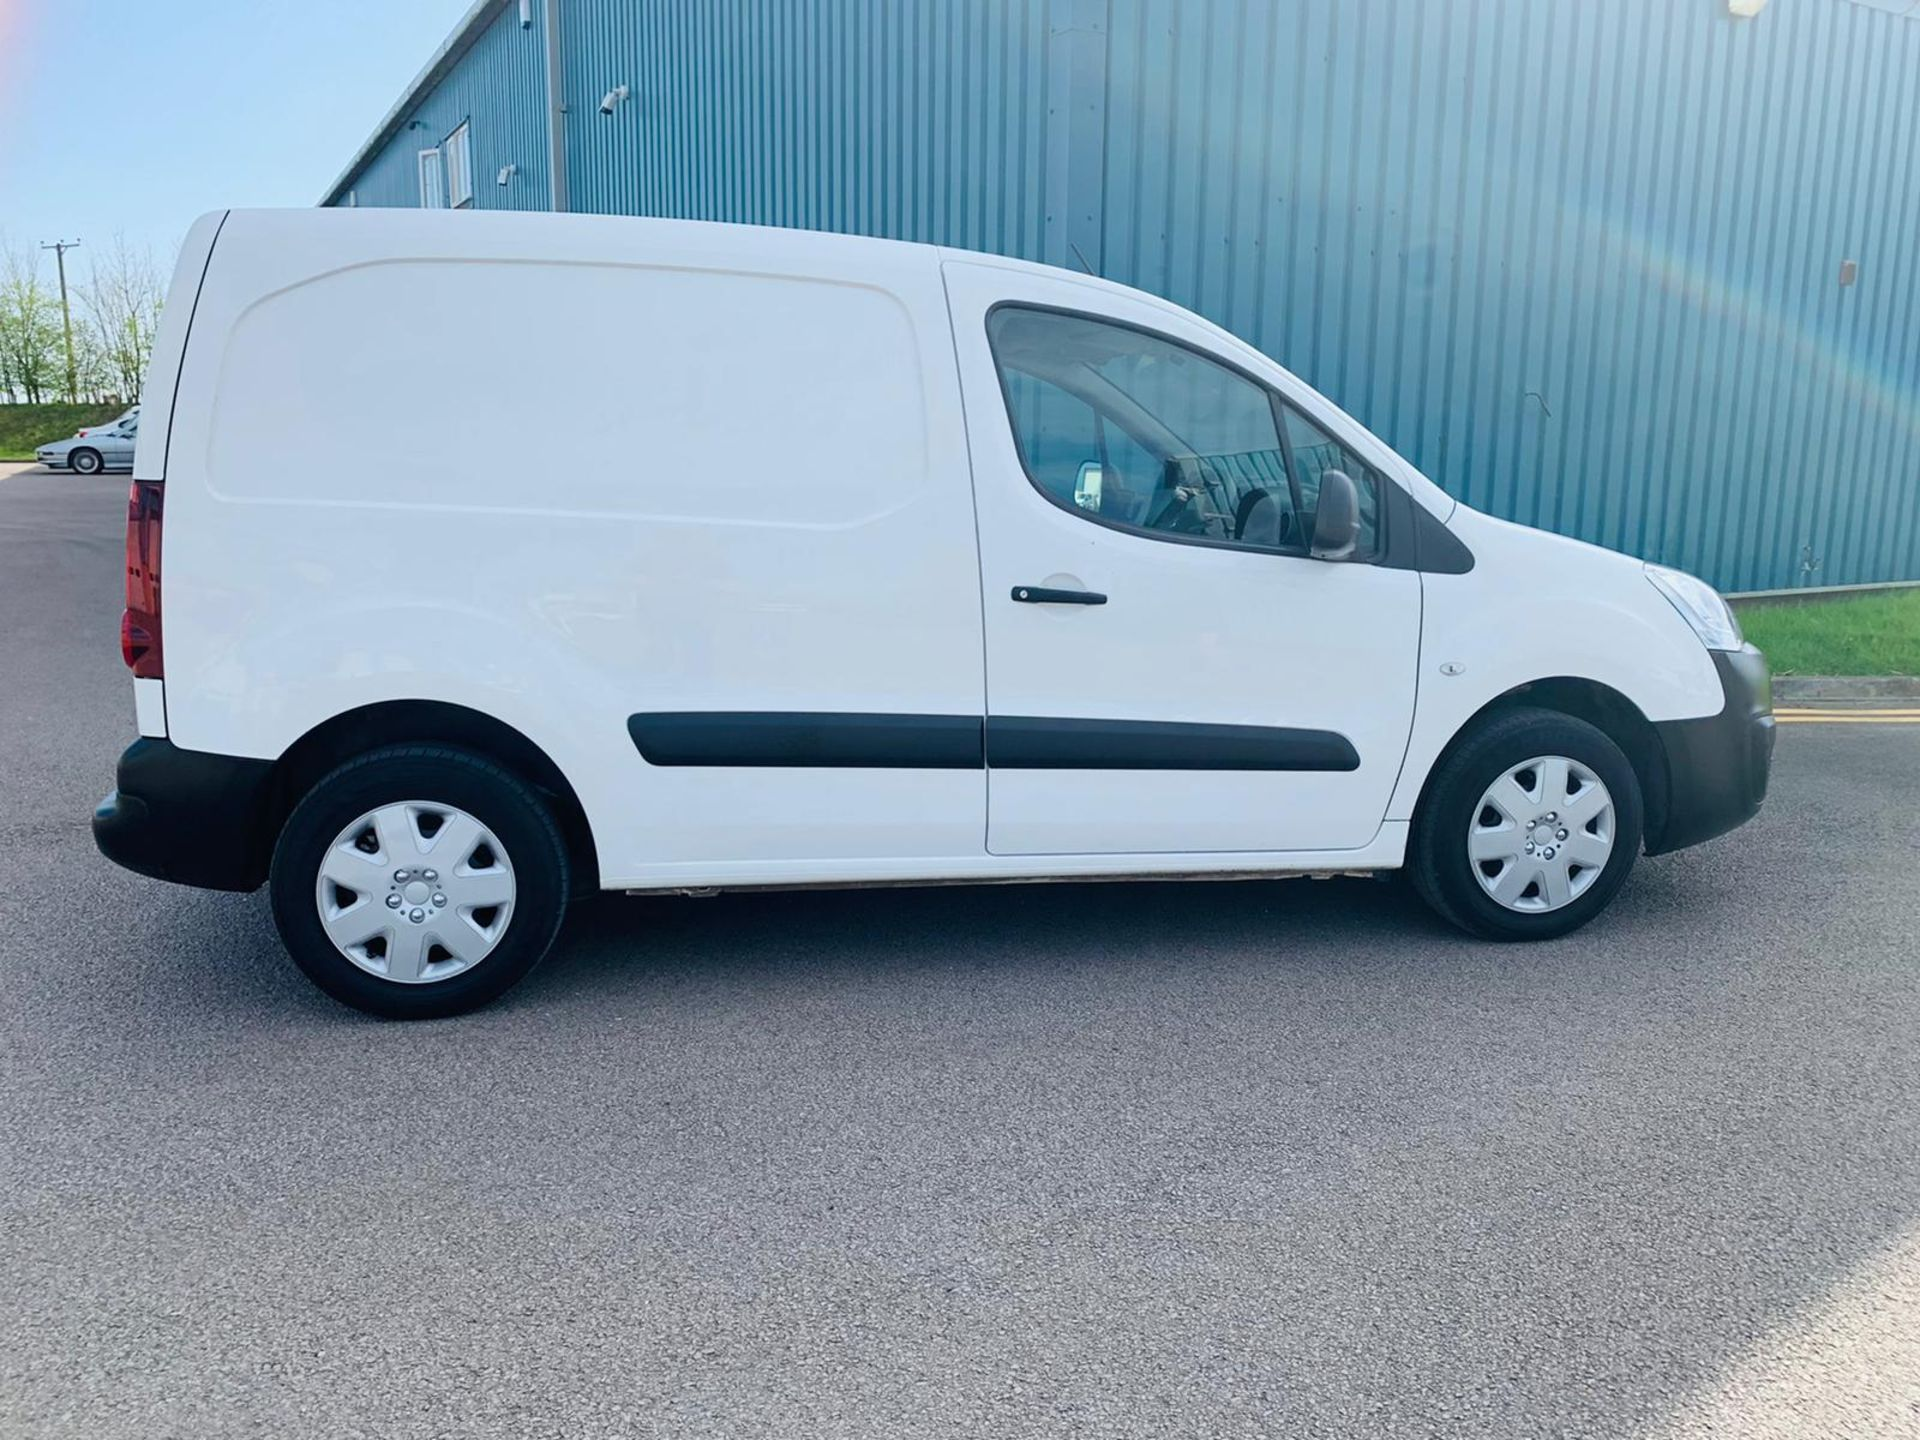 Peugeot Partner 1.6 HDI Professional 2017 Model - 1 Owner - Service Printout - Air Con - Image 3 of 23